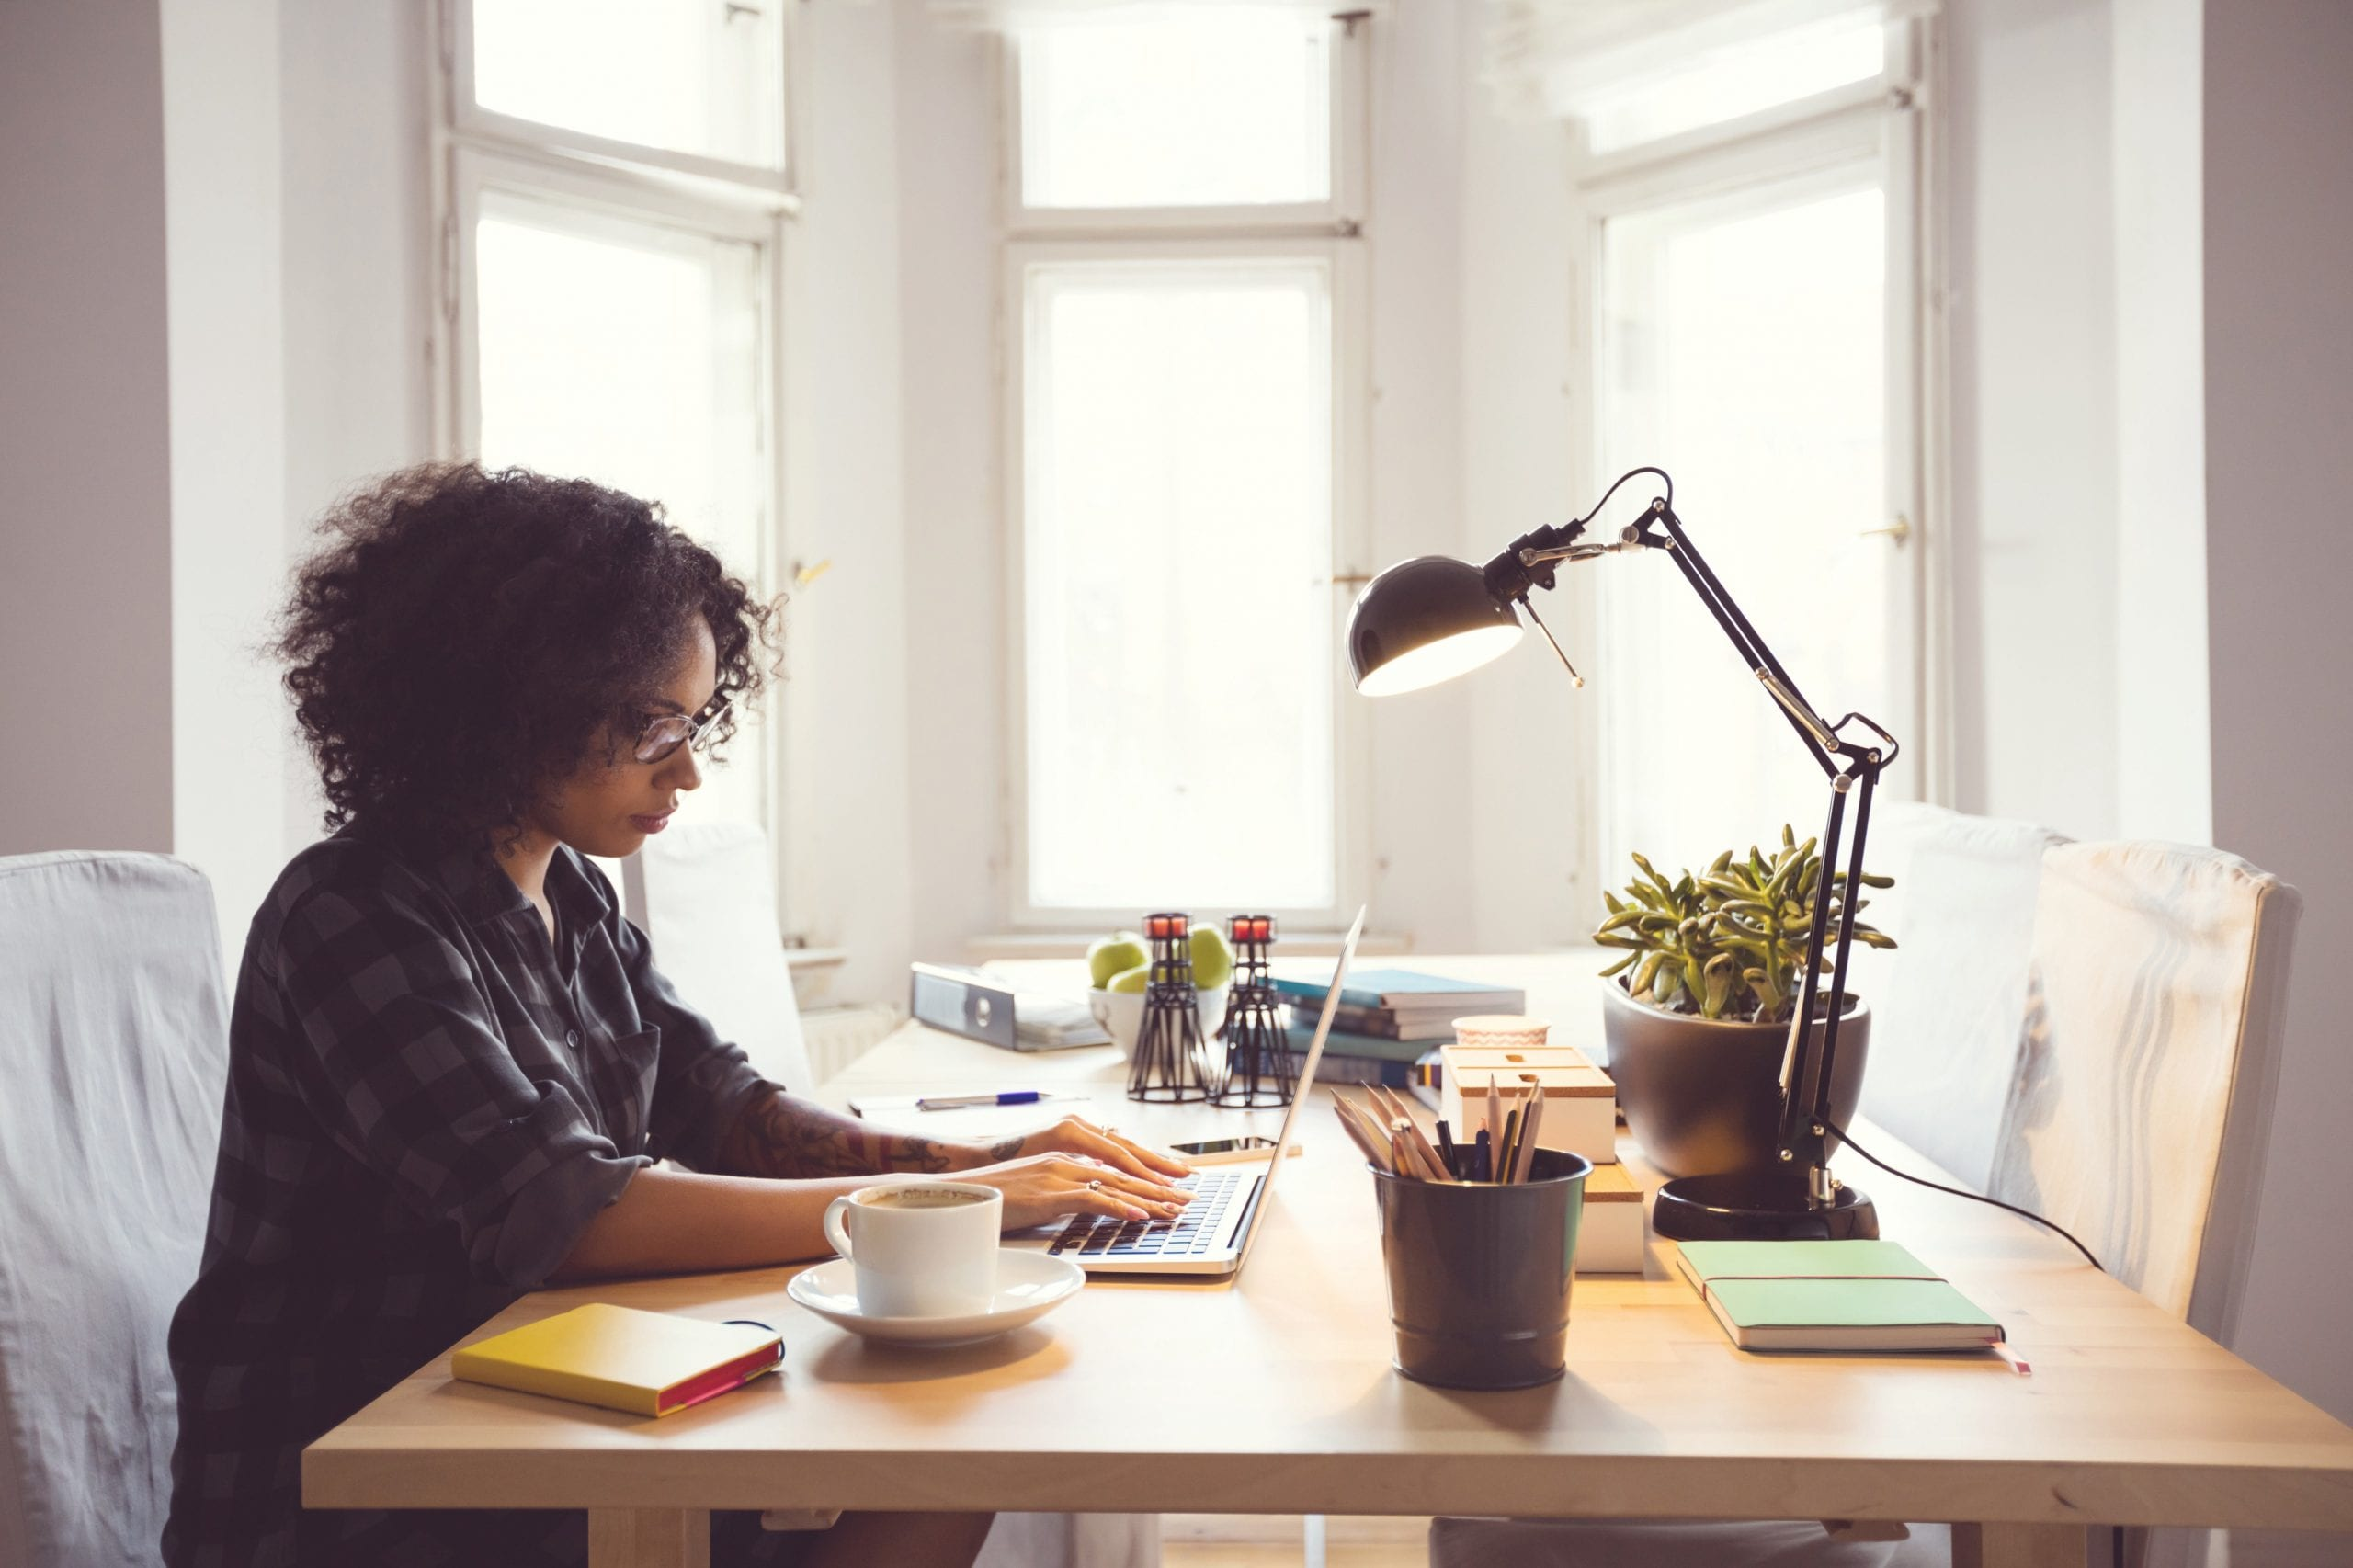 wellness programs while working from home, virtual wellness activities during covid, virtual welness activities for employees, virtual wellness ideas for employees, wellbeing initiatives for remote workers, virtual wellness challenge ideas, wellness ideas for working from home